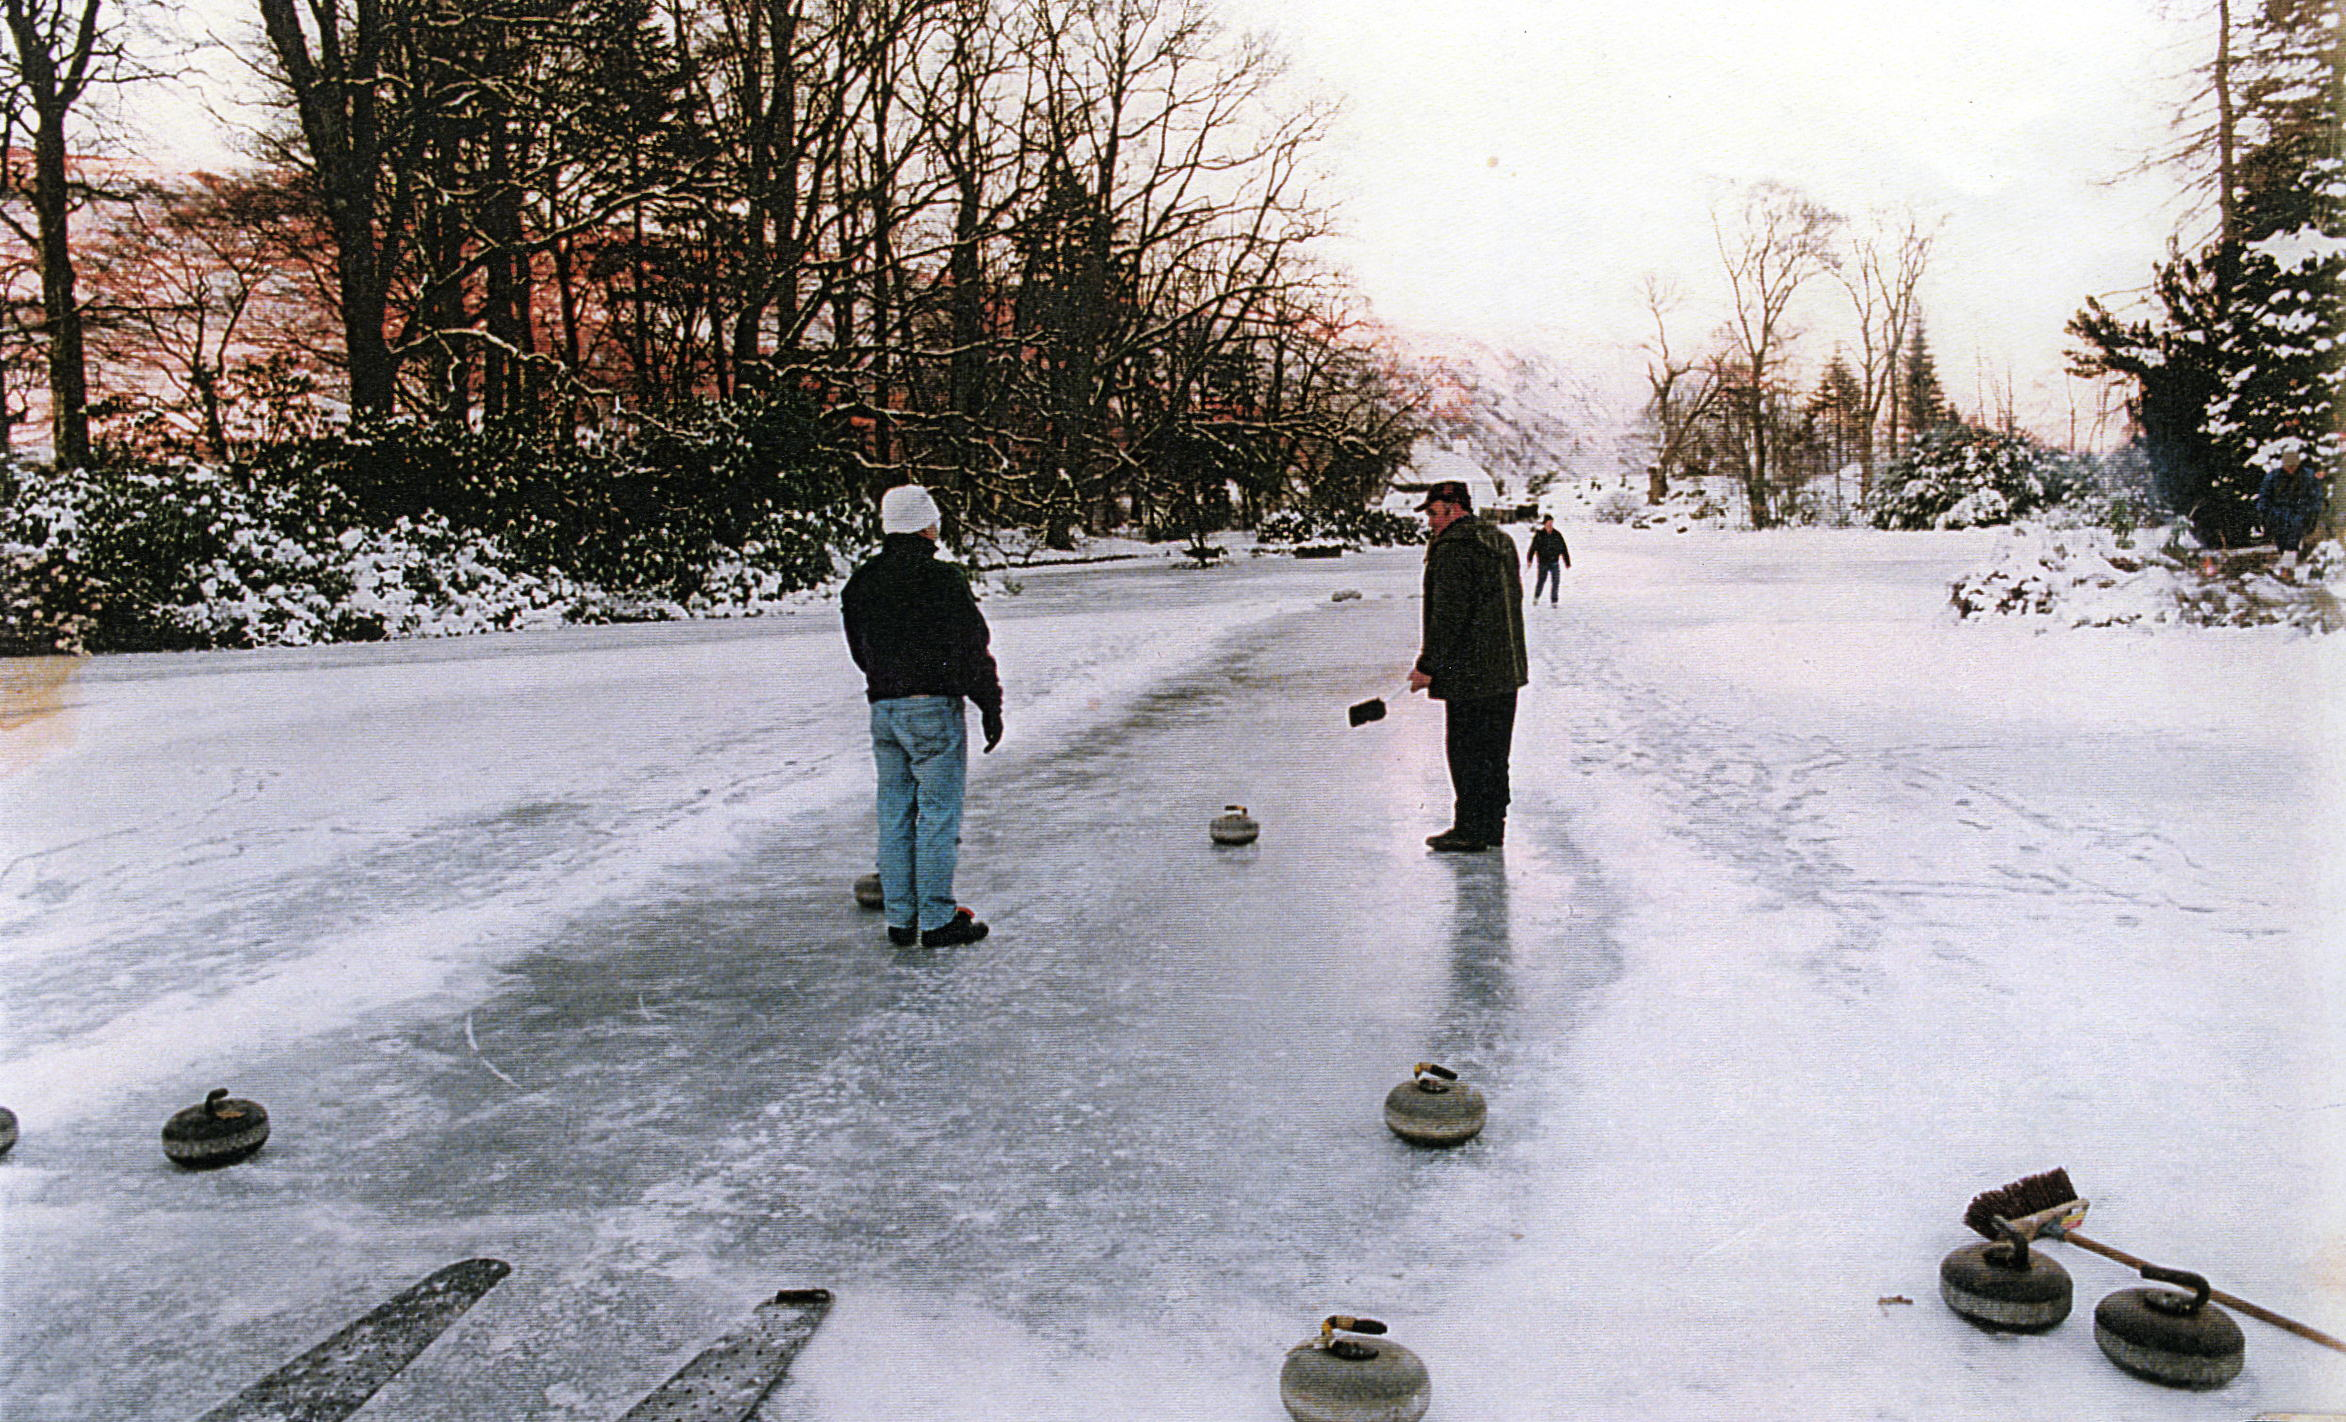 Curling on the caspian at Ardkinglas